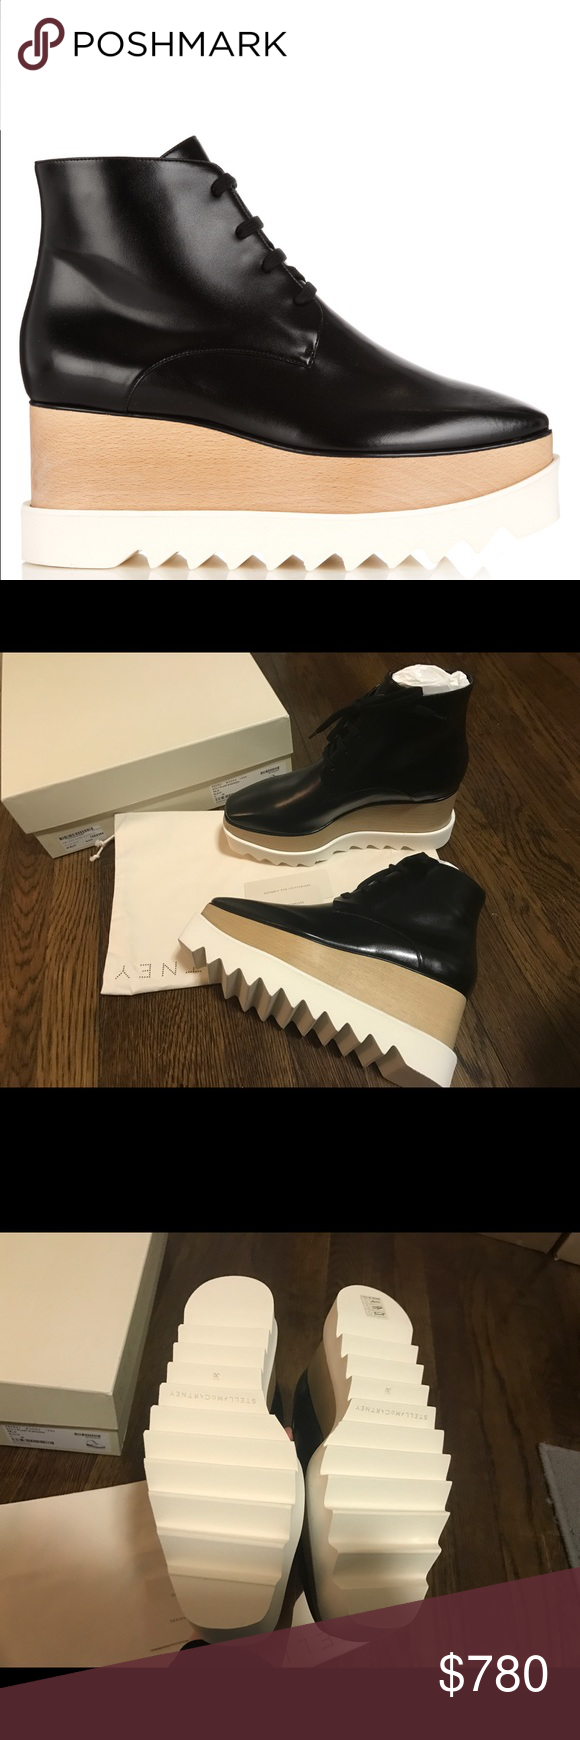 Stella McCartney 2016 Black Elyse Platform Boots Brand new and still in box! Size 36. Classic black color and never on sale!  Super cool ankle boots version. Stella McCartney Shoes Ankle Boots & Booties